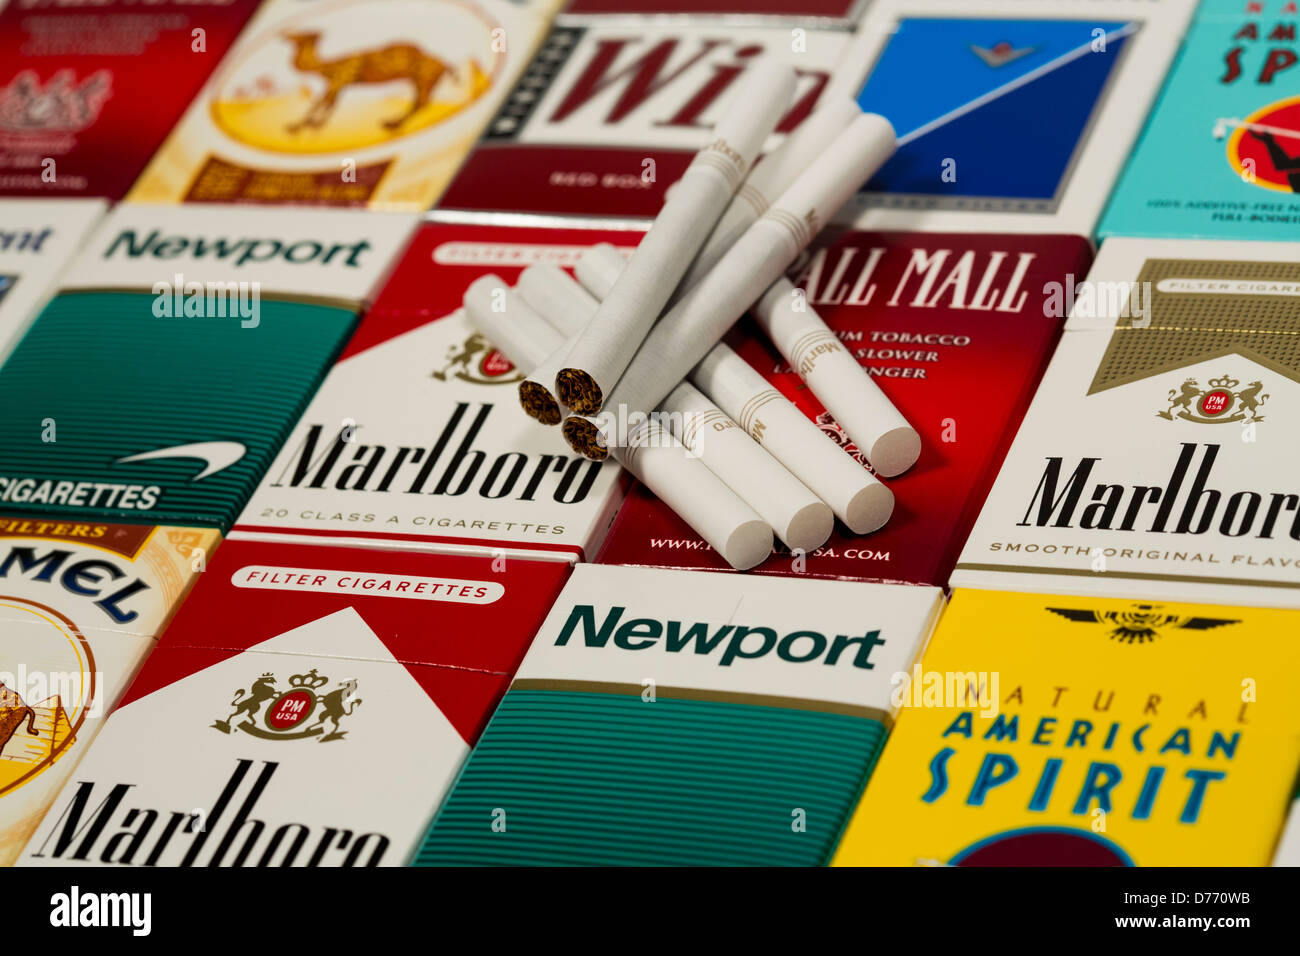 How much Silk Cut cigarettes cost in holland